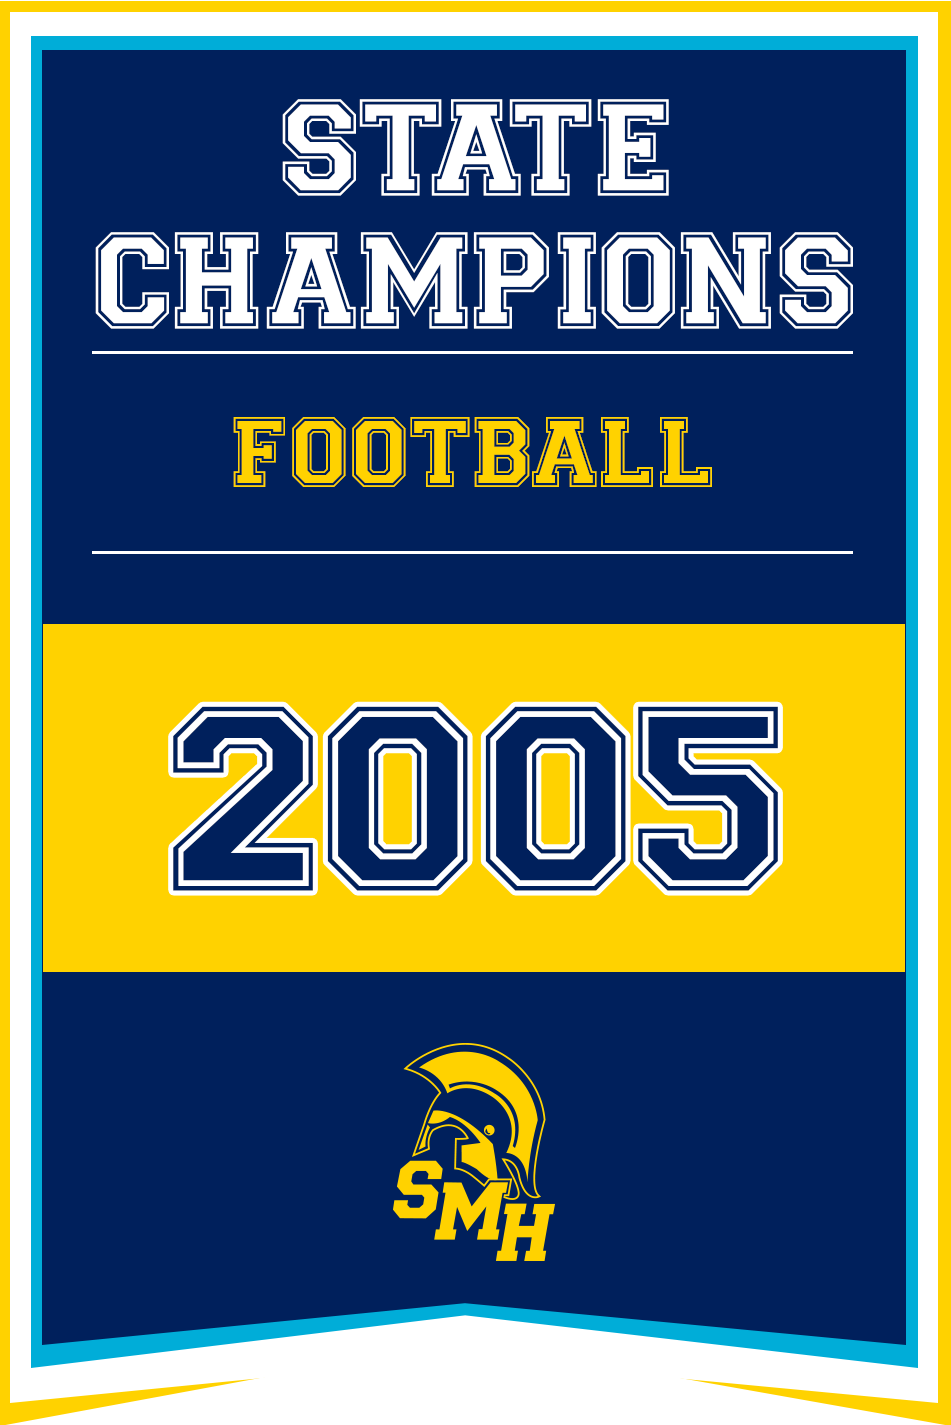 state champions football 2005